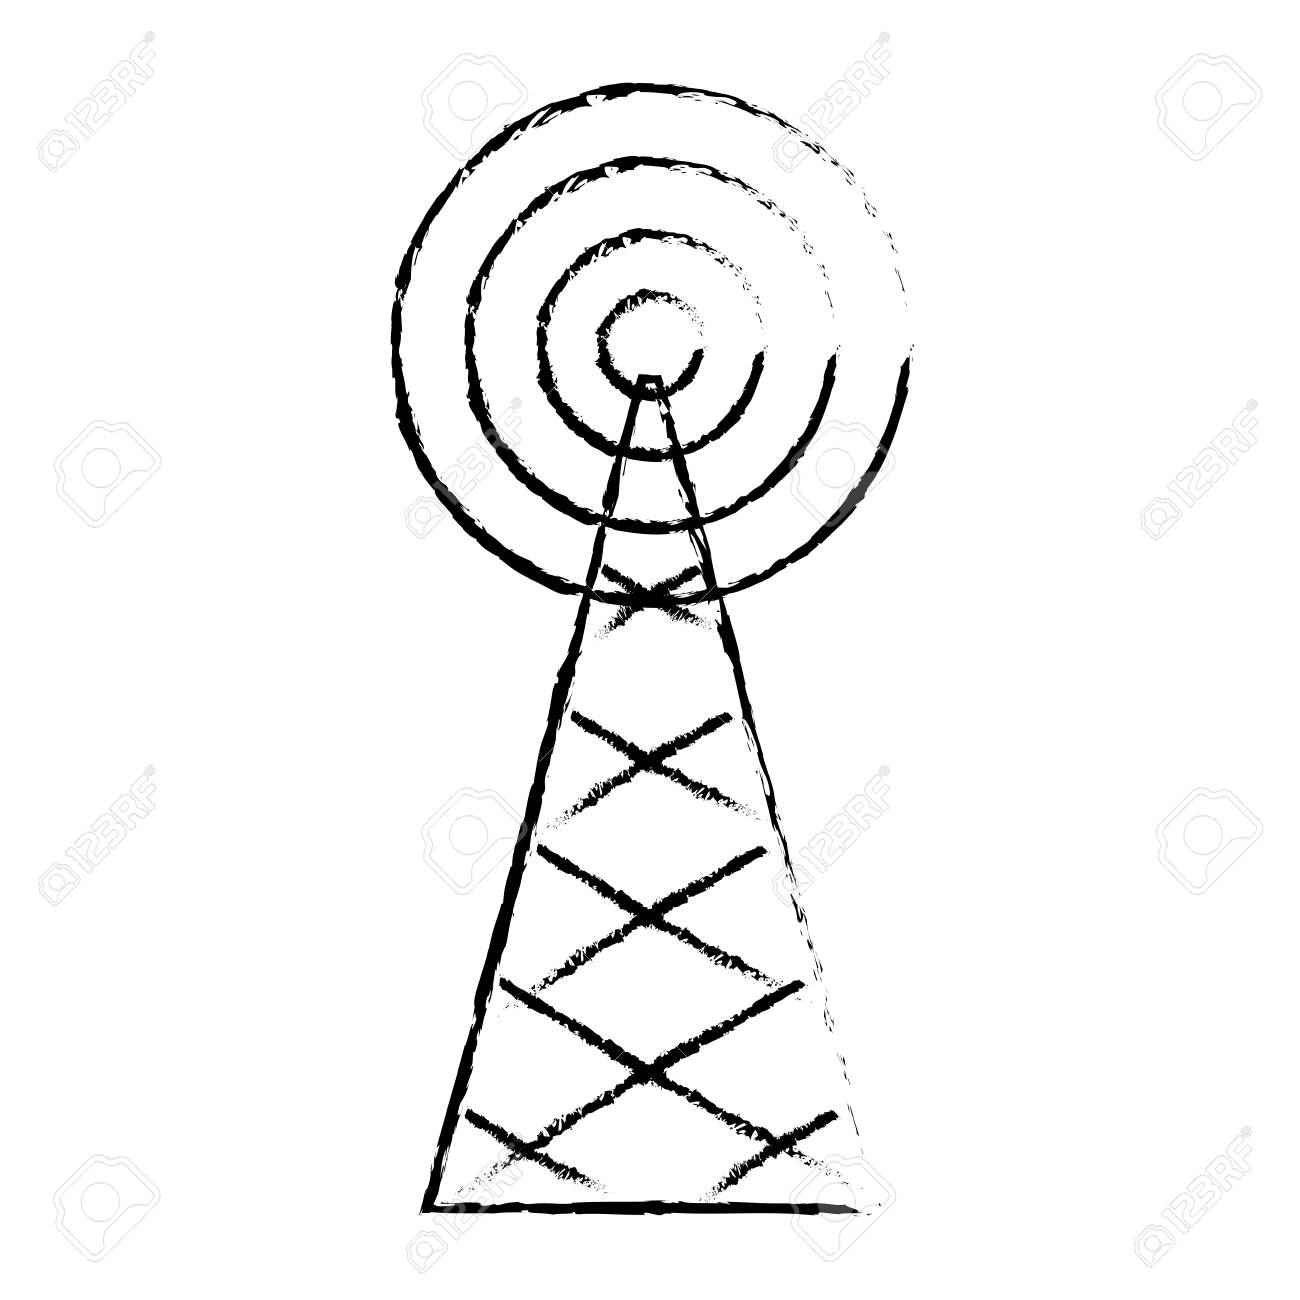 Radio Tower Drawing at GetDrawings com | Free for personal use Radio